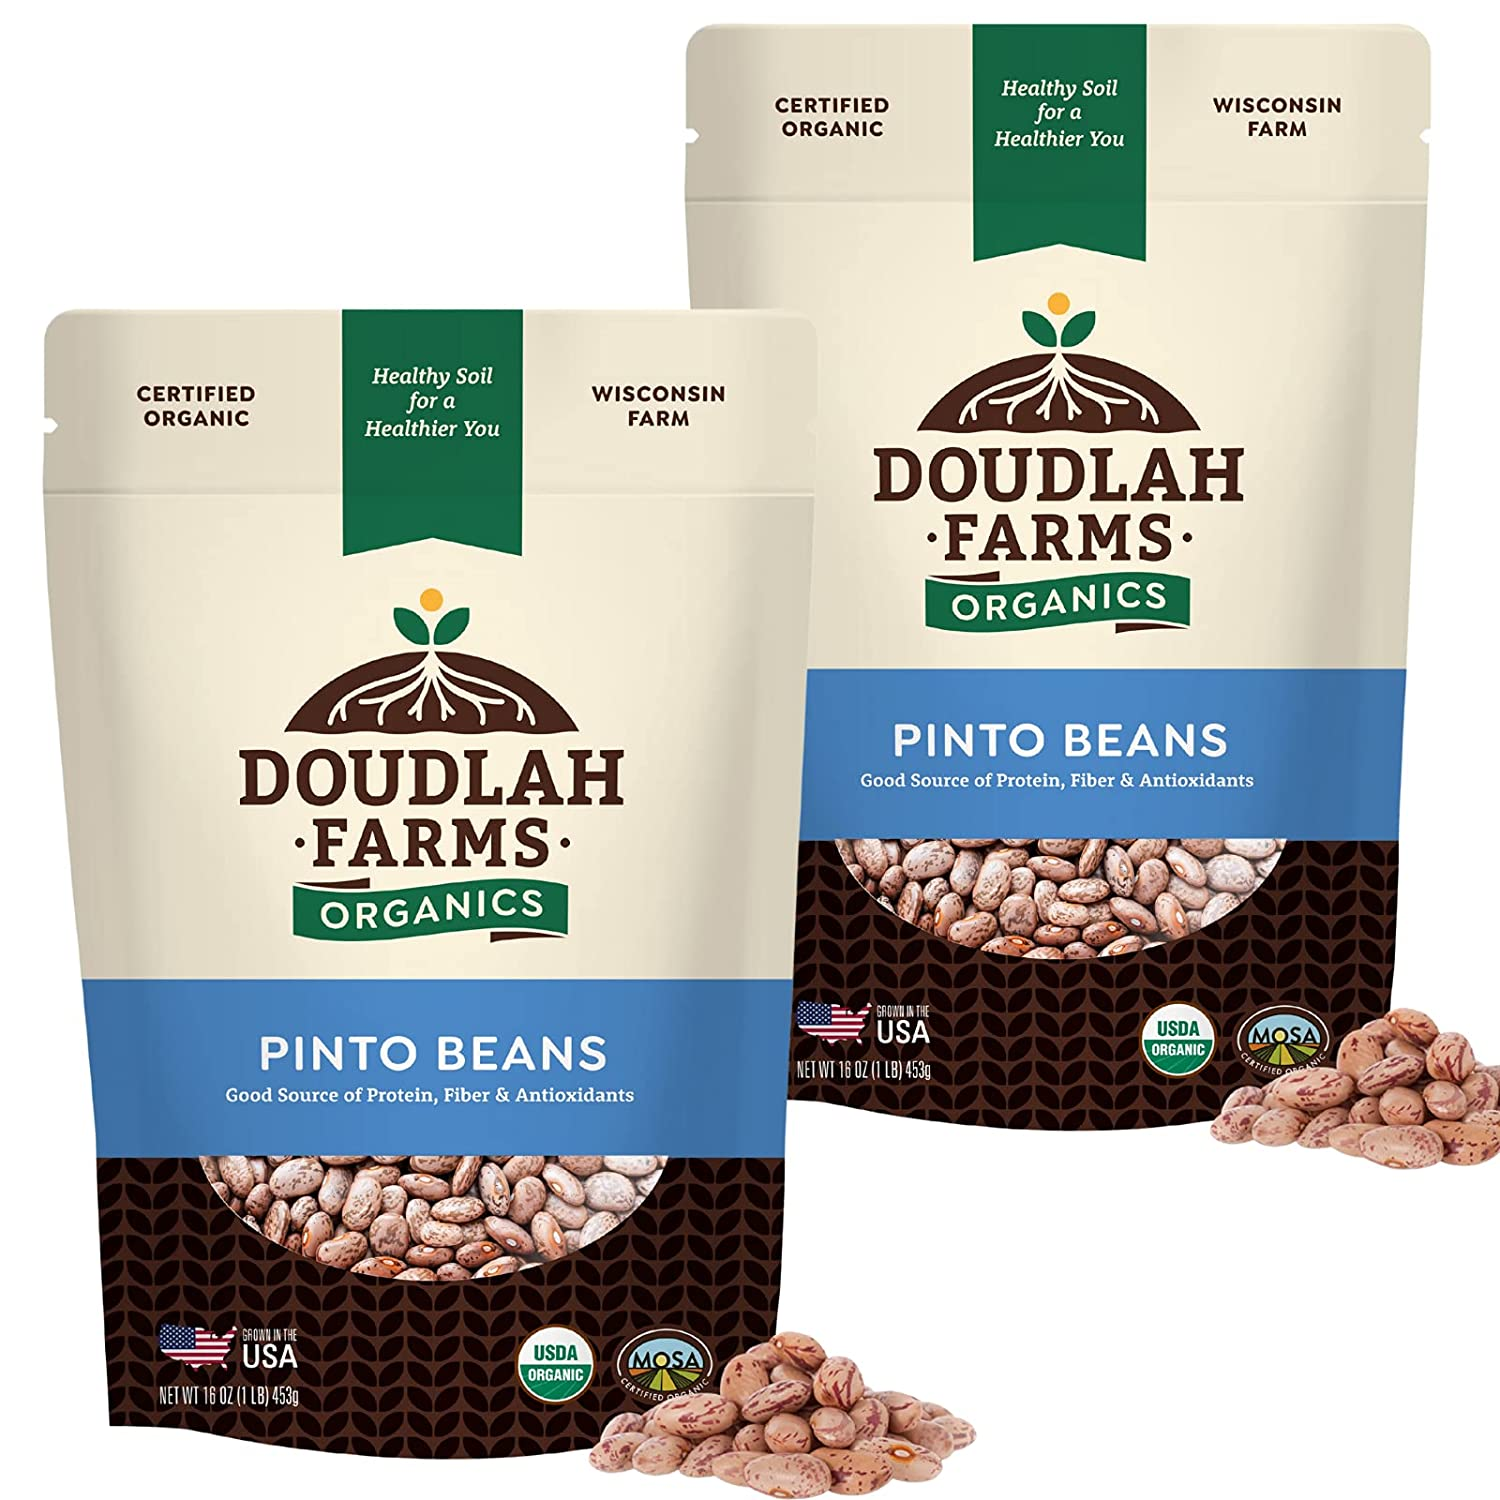 Organic Pinto Beans Dry by Doudlah Non- Pure 2021 new Farms Grown - USA Recommendation